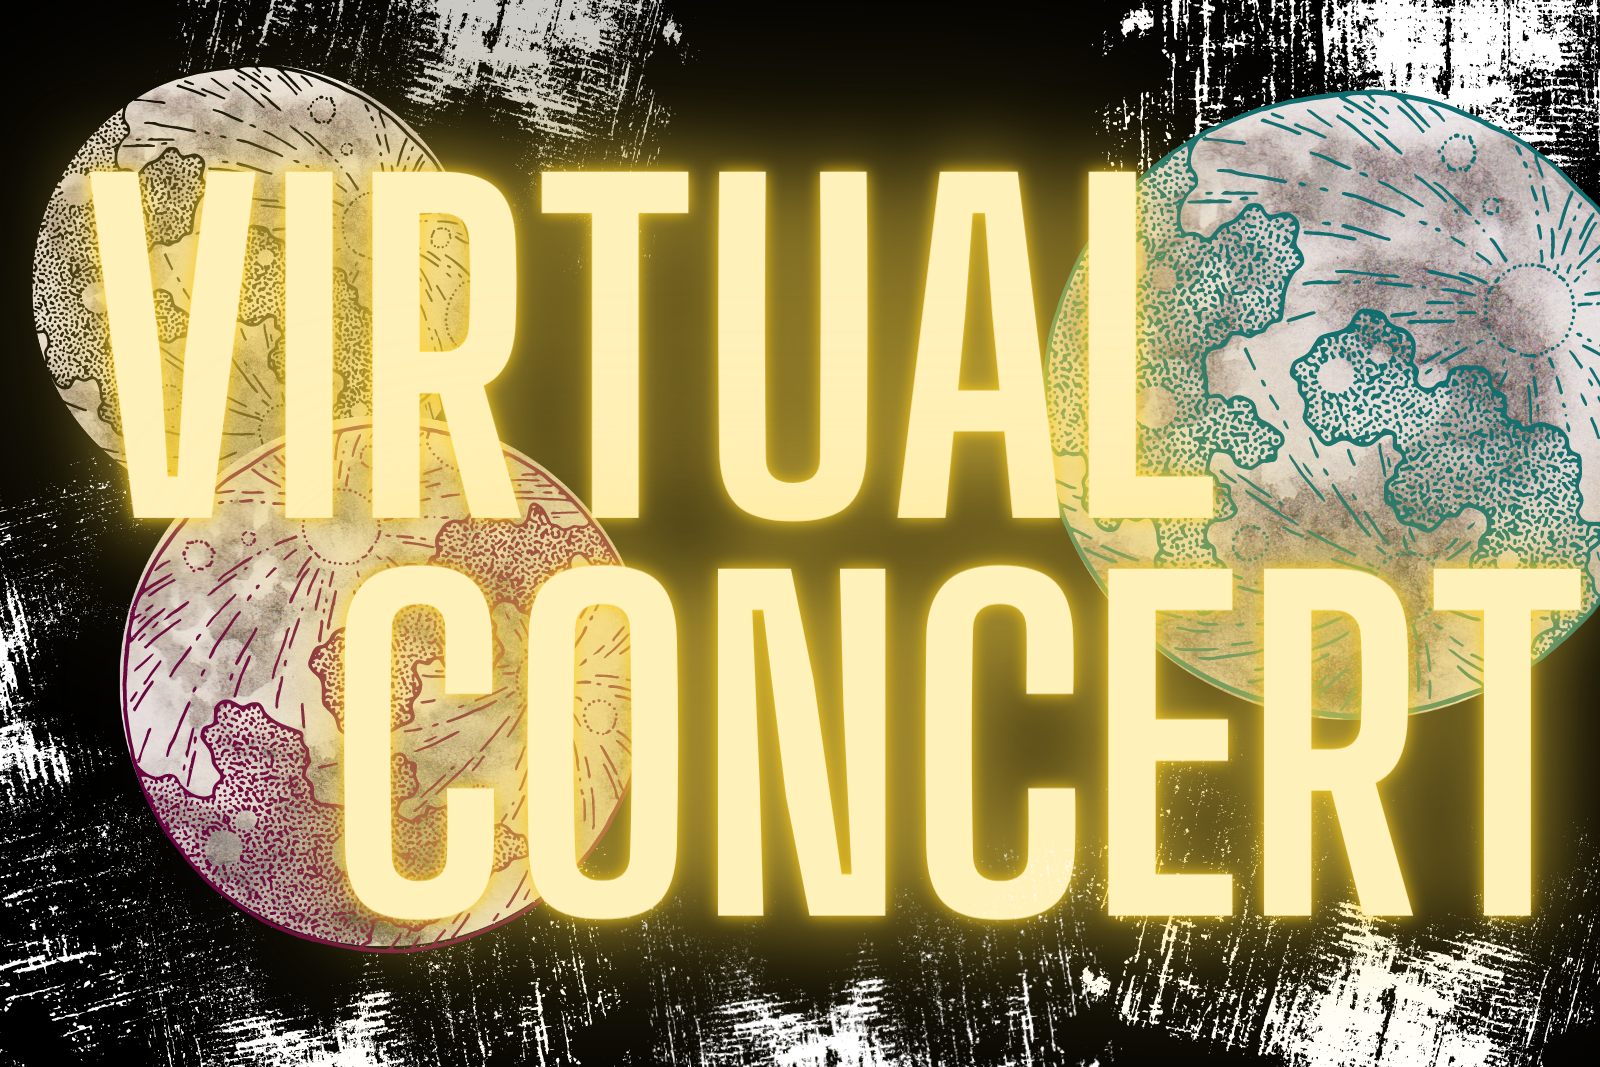 Virtual Concert Graphic black background three moon images and the words 22 Virtual Concert22 in glowing yellow